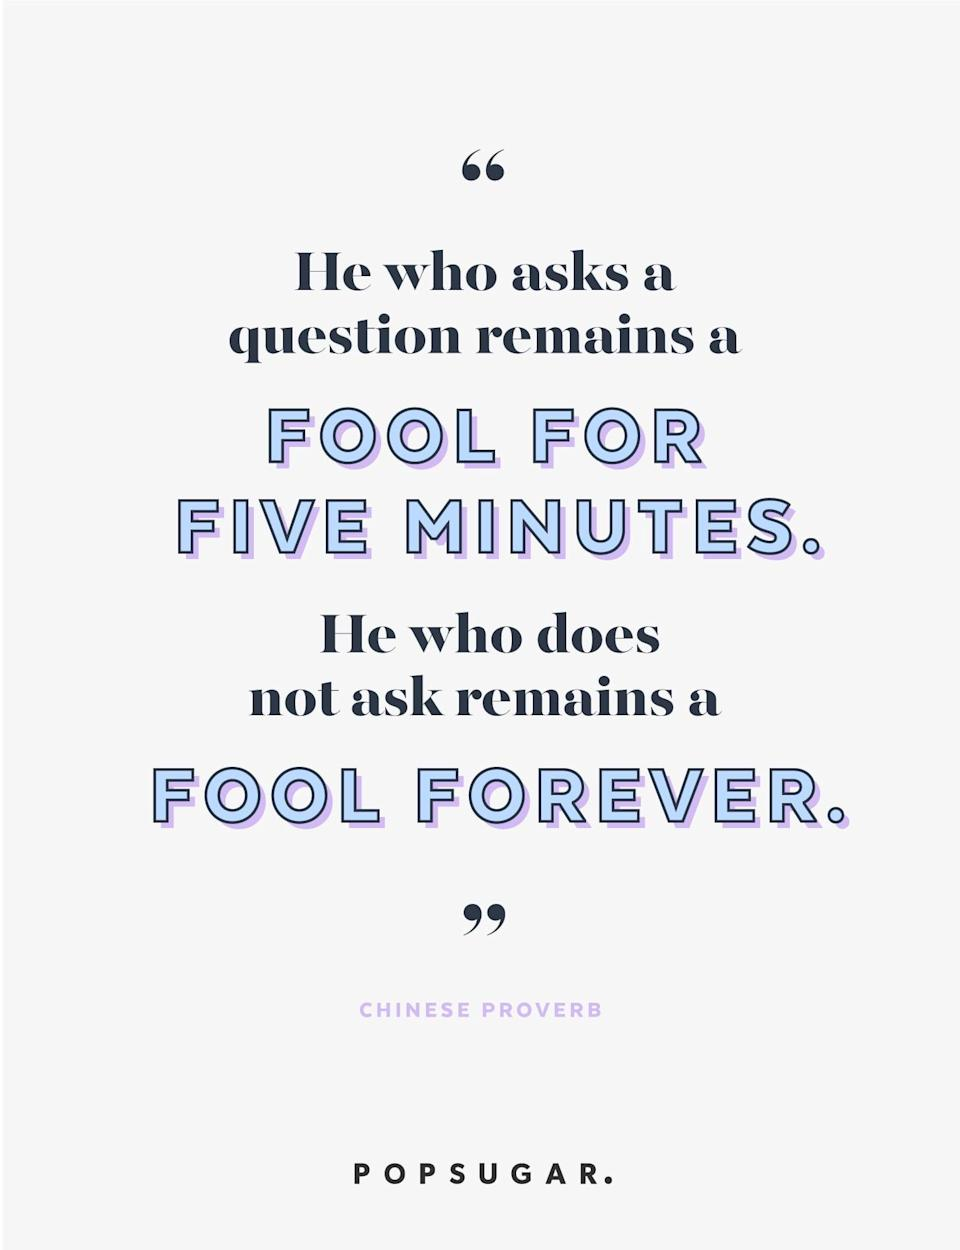 """<p><b>Quote:</b></p> <p>""""He who asks a question remains a fool for five minutes. He who does not ask remains a fool forever.""""</p> <p><strong>Lesson to learn:</strong></p> <p>If you don't ask questions, you're not going to find out what the answer is. Don't be afraid of asking them, because people will appreciate your curiosity.</p>"""